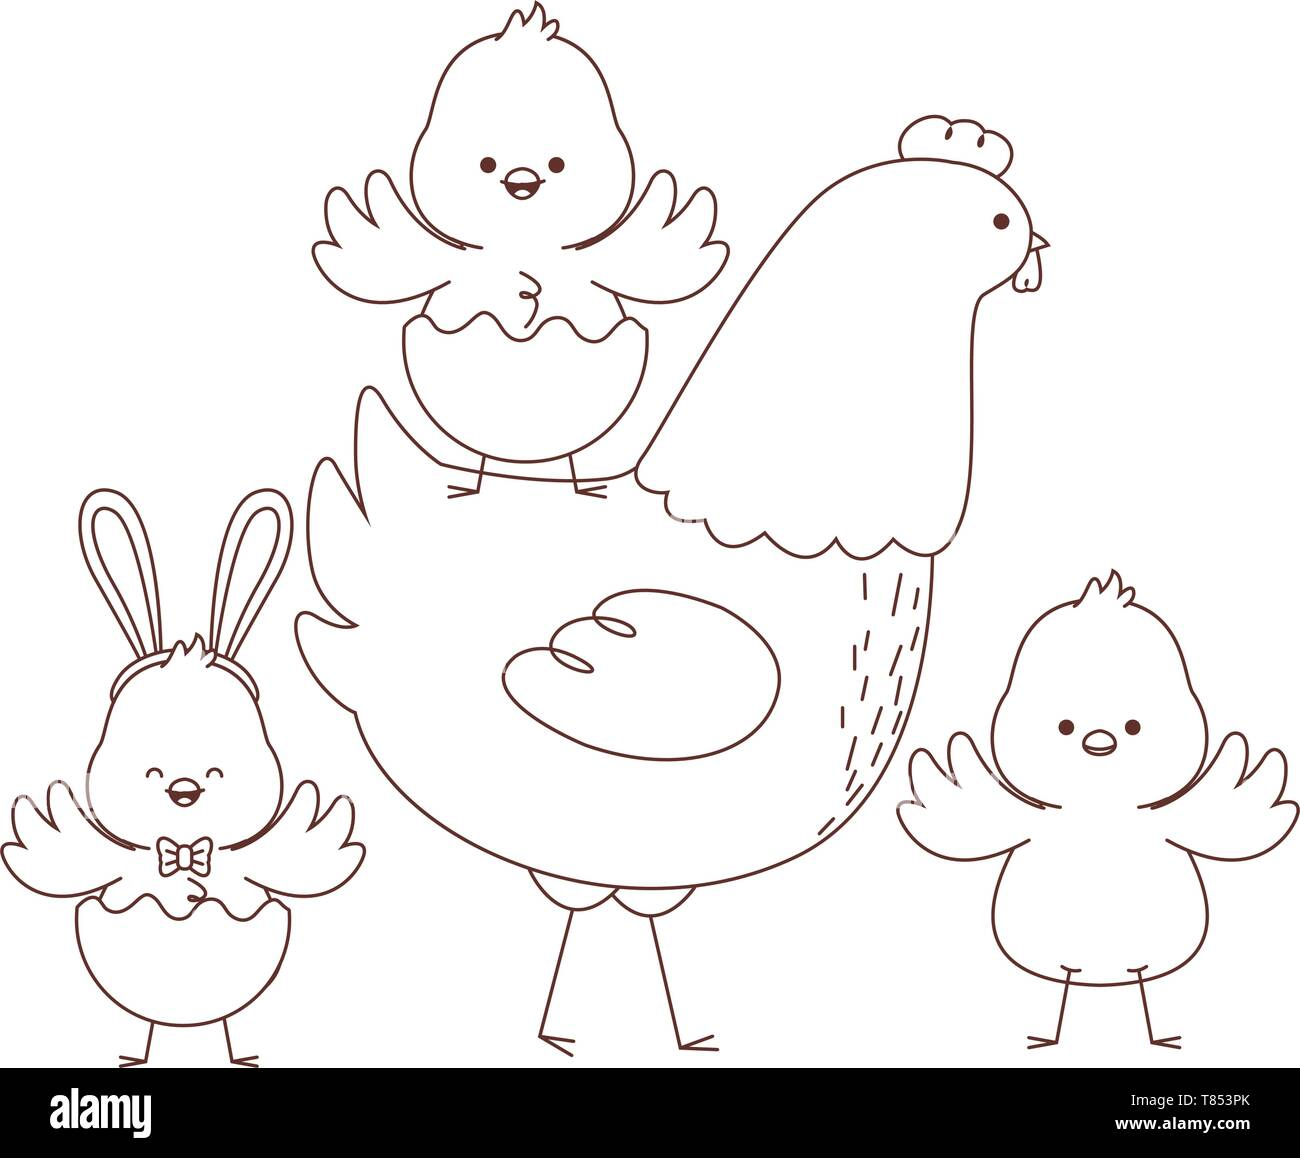 Happy Farm Animals Outline Stock Vector Art Amp Illustration